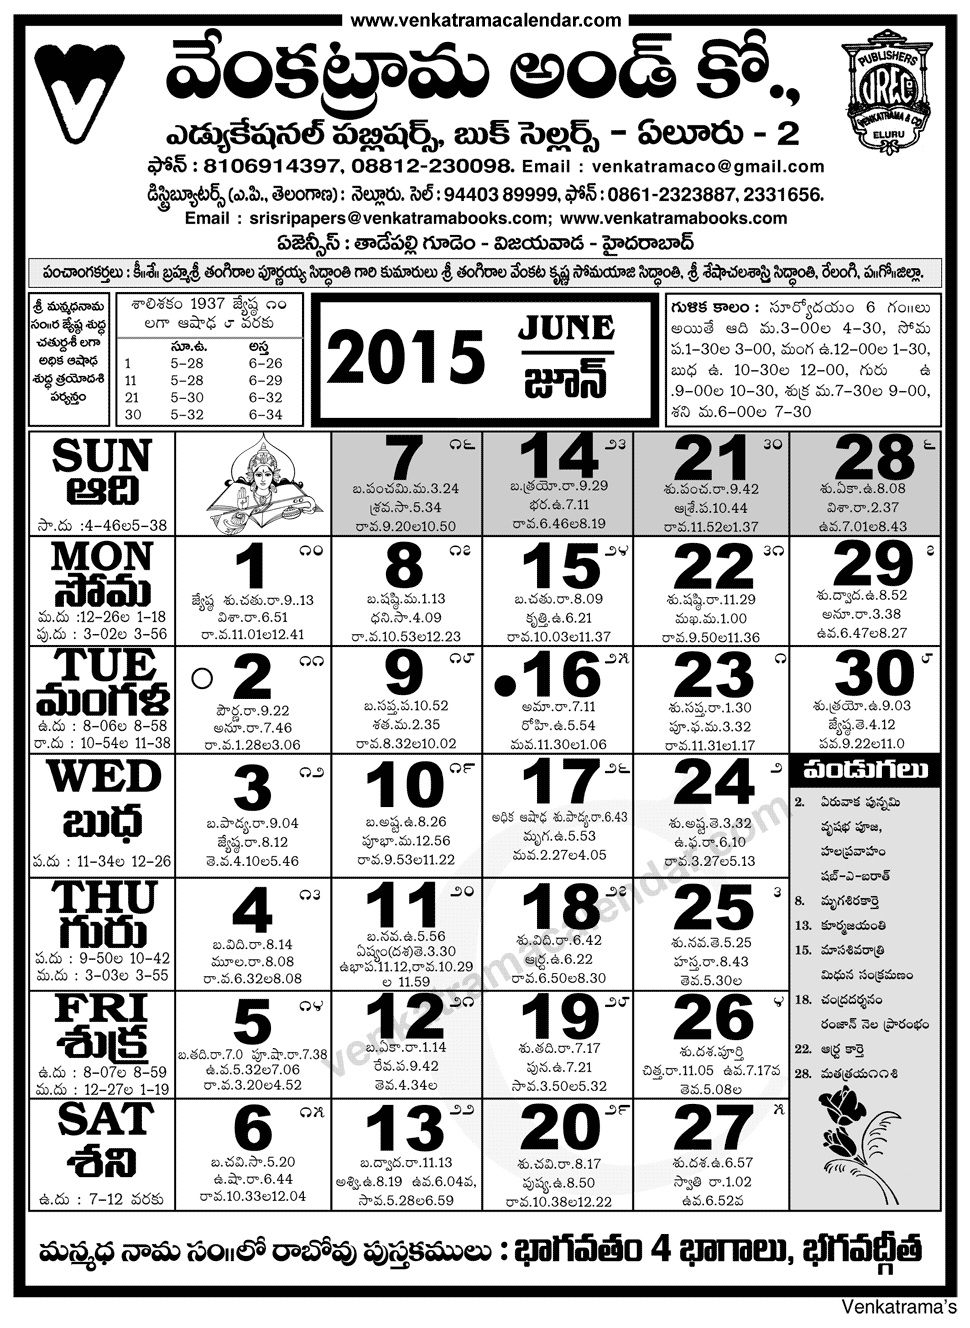 June Telugu Calendar : Venkatrama co calendar june